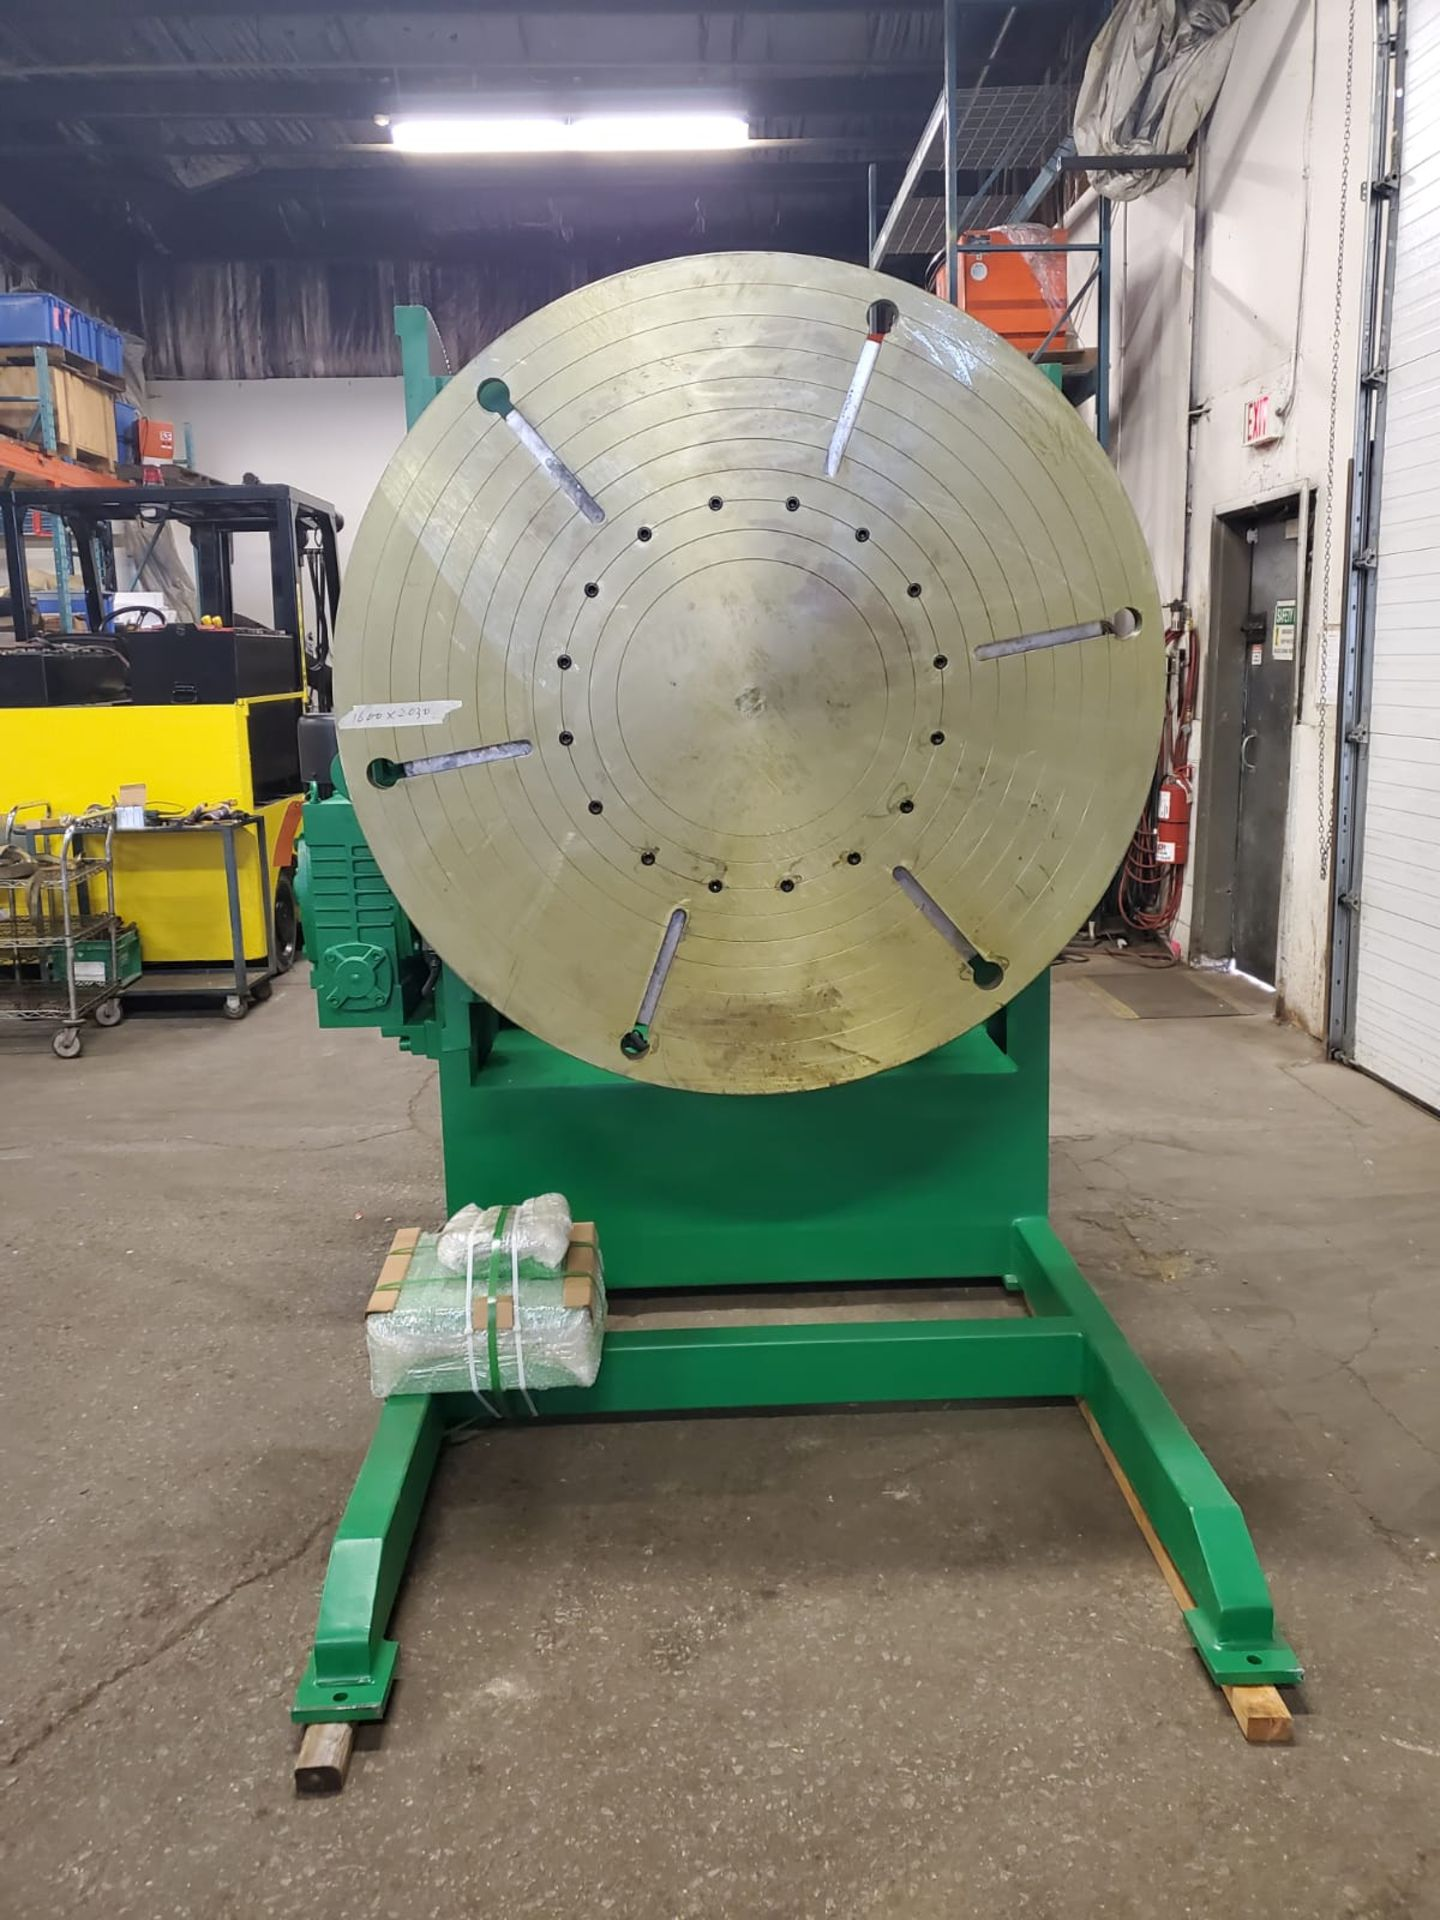 Verner model VD-12000 WELDING POSITIONER 12000lbs capacity - tilt and rotate with variable speed - Image 2 of 2